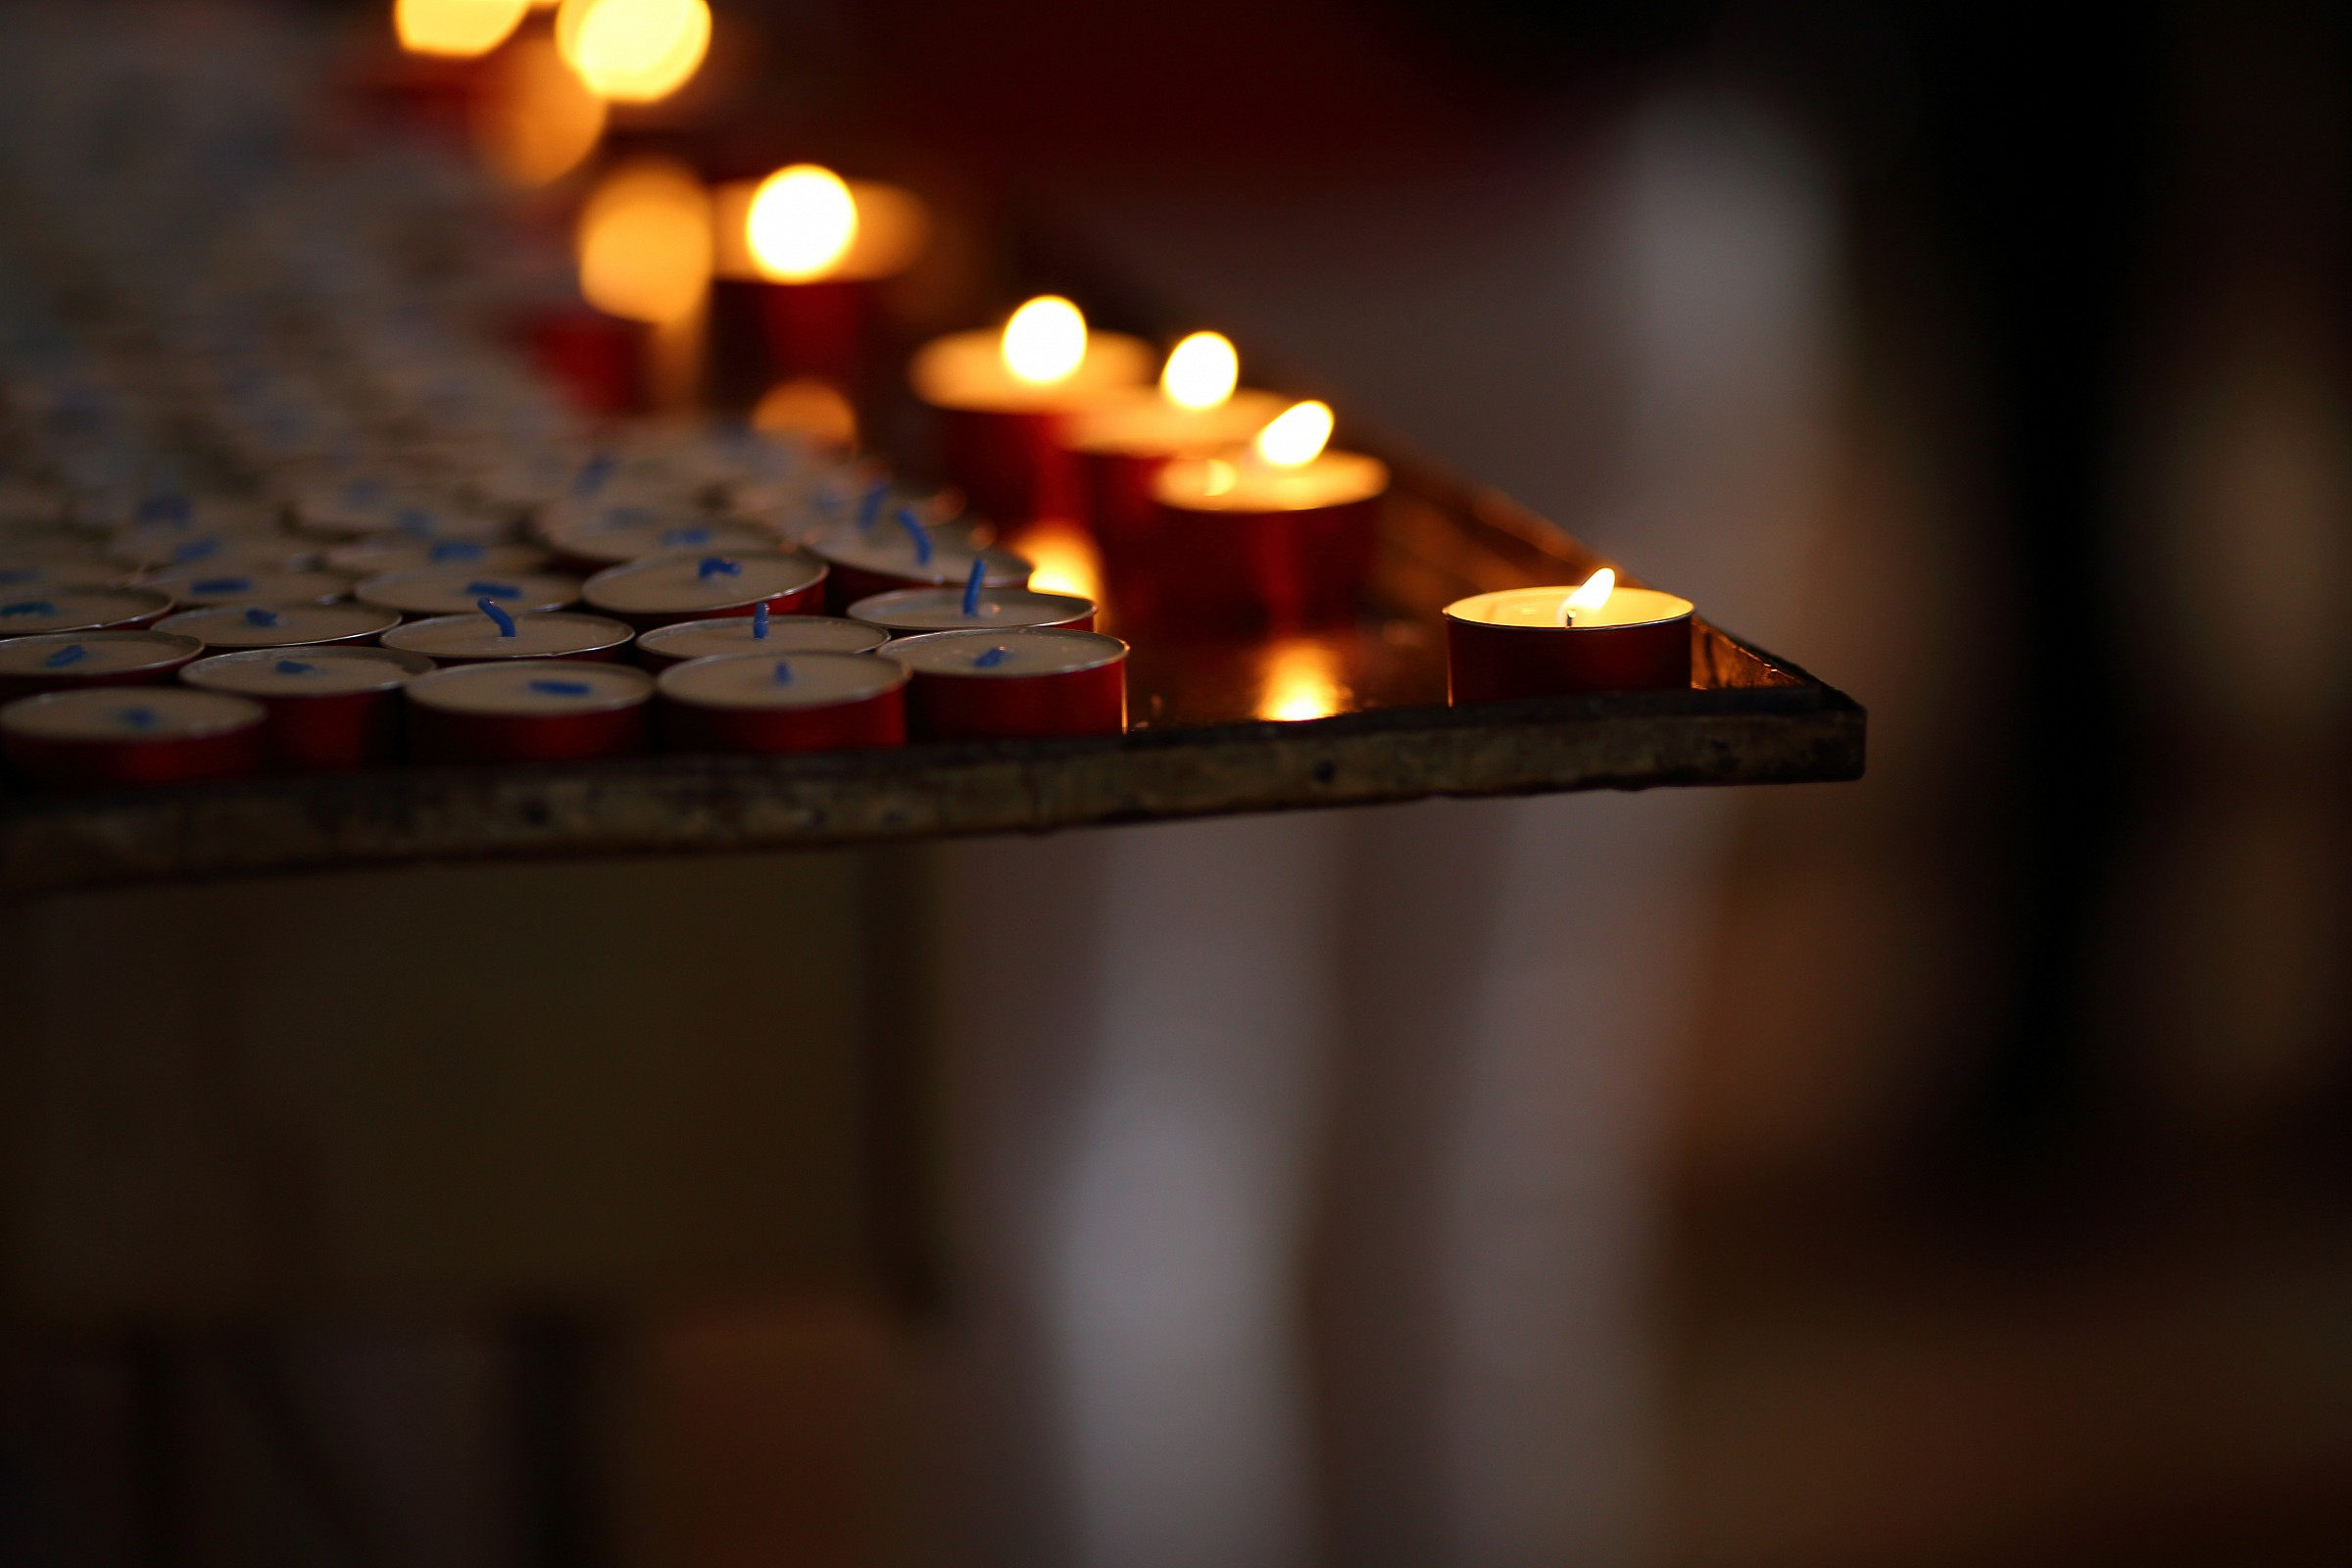 Candles ......